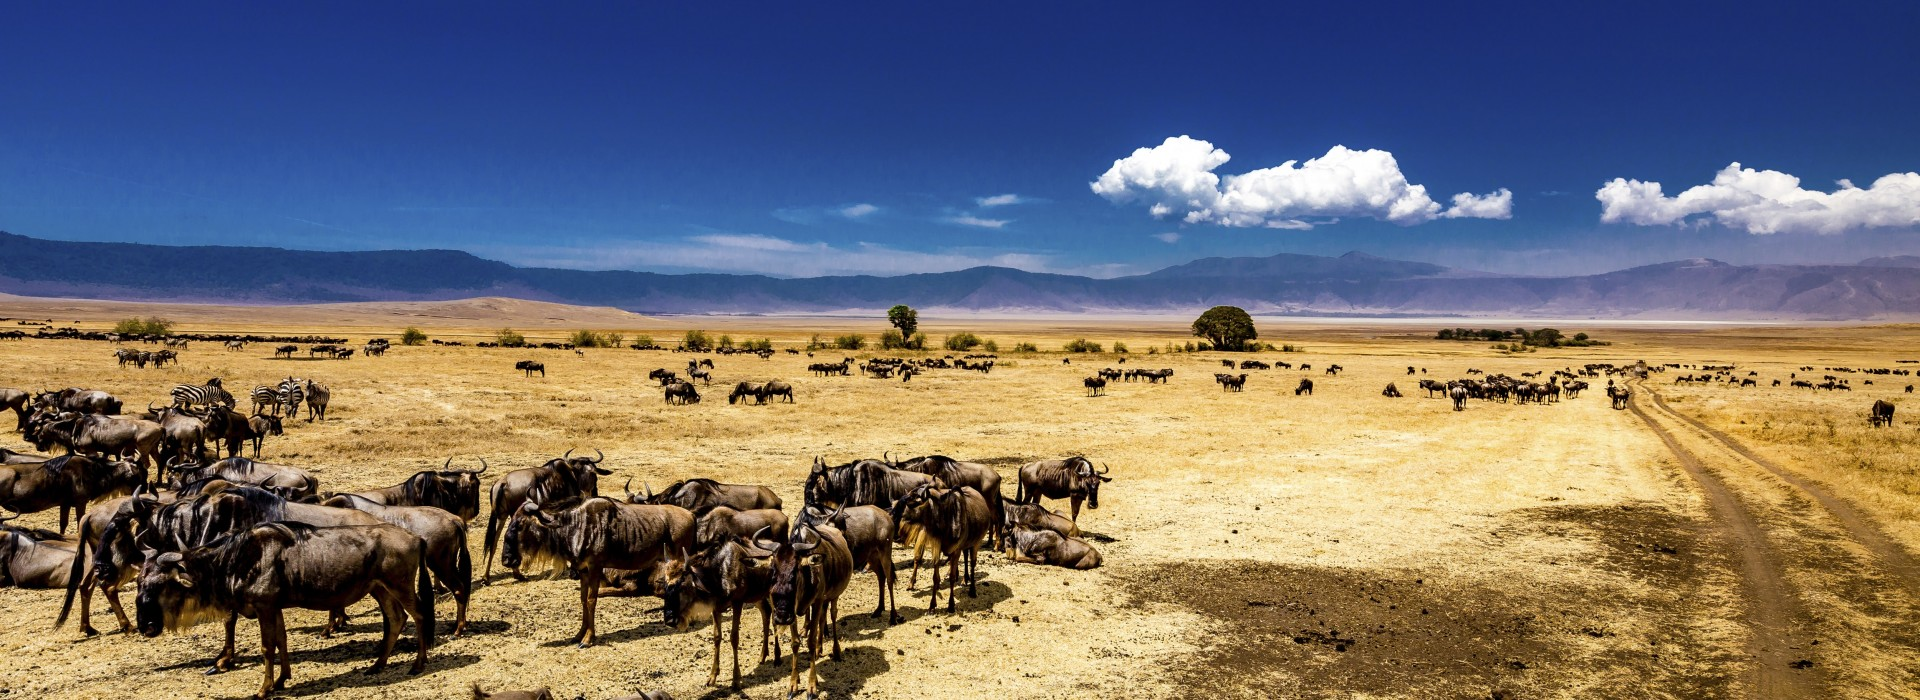 Herd of wildebeests in the Ngorongoro Crater